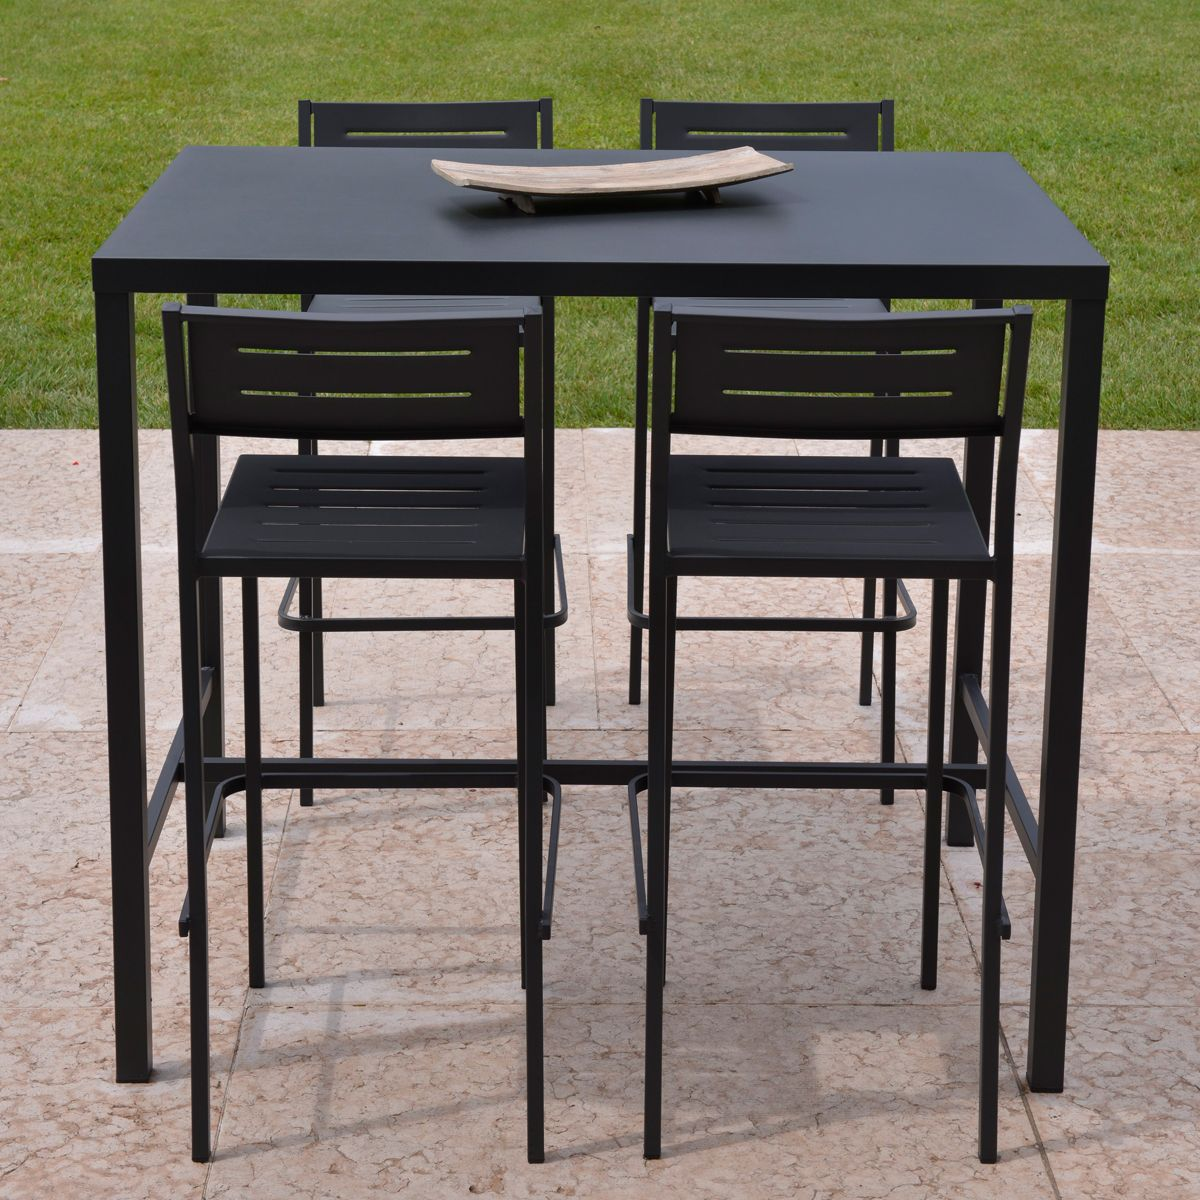 Ensemble de jardin table haute tabouret dorio rd italia for Ensemble jardin exterieur